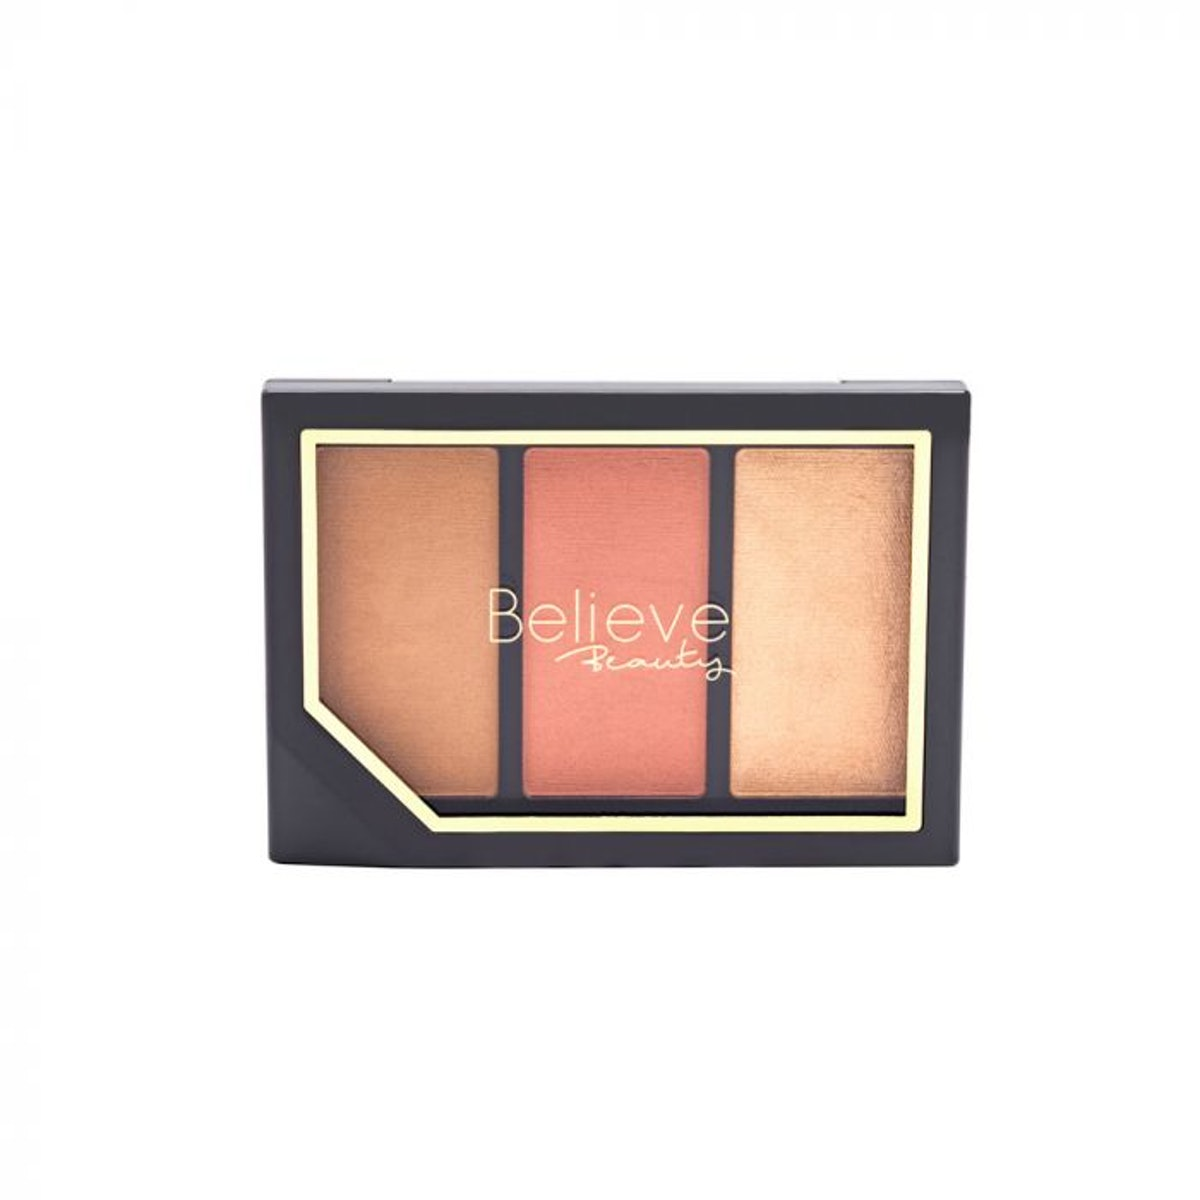 Believe Beauty Get Glowing Highlight And Contour Palette